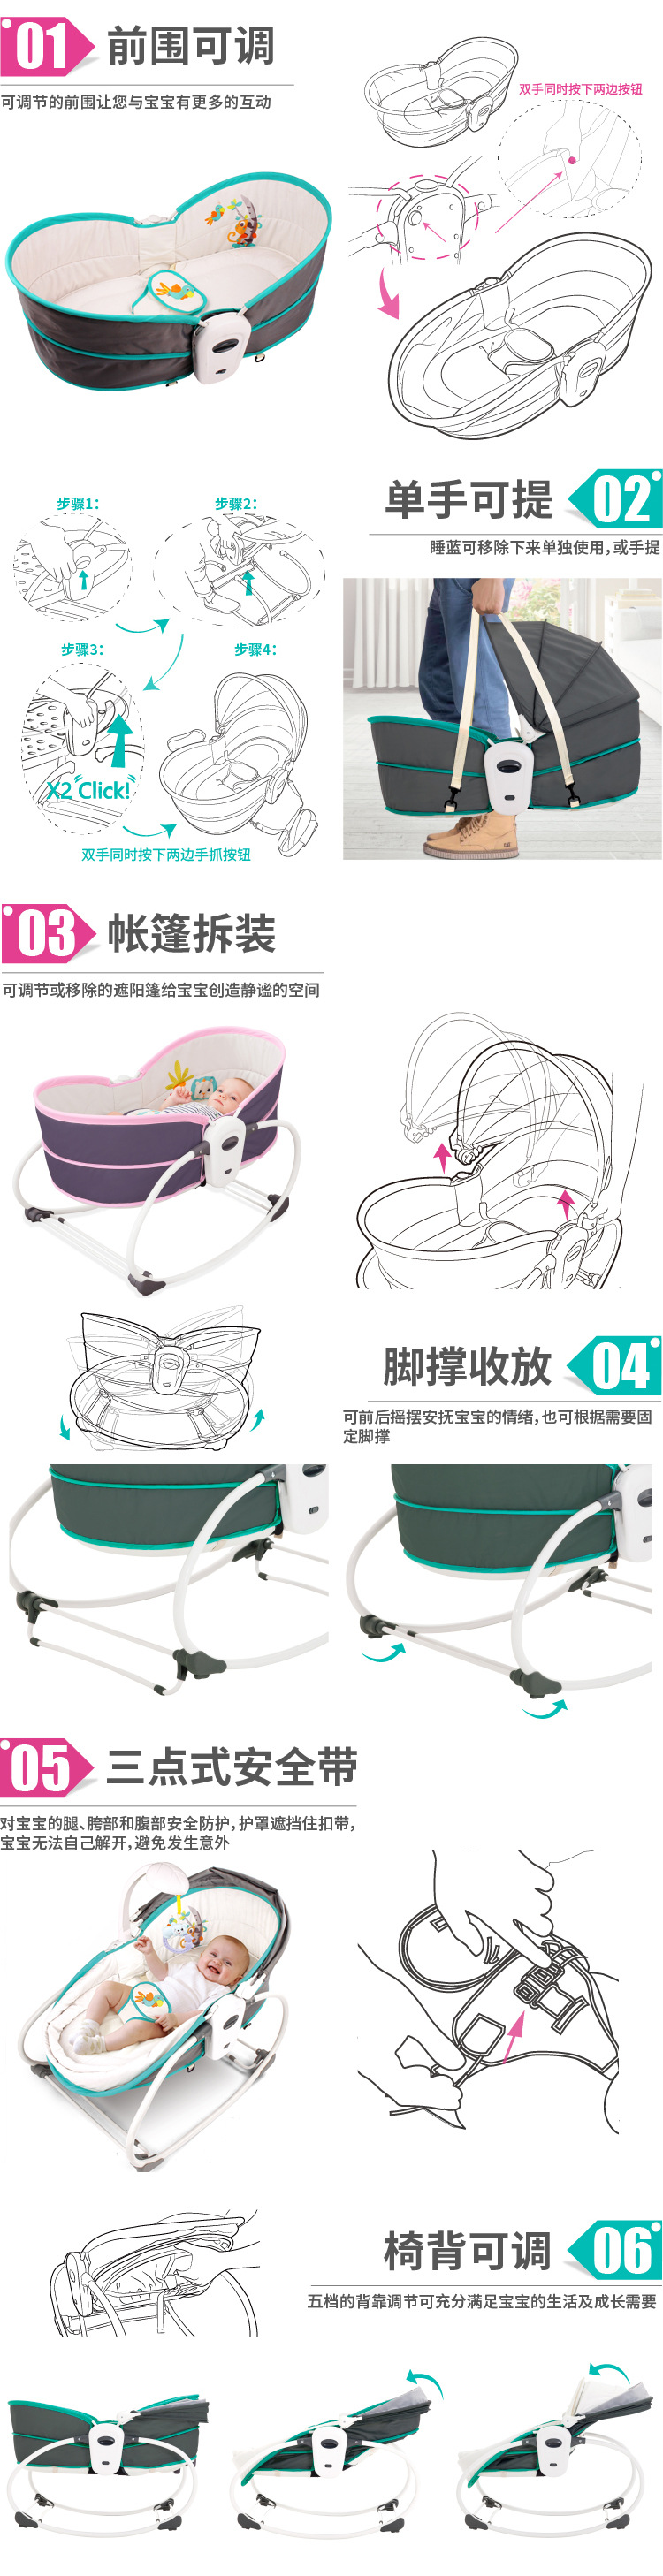 Hd75c085fde2142d0ab40e259c8587686N Baby Furniture Cradle 5 in 1 baby rocking bed Baby Cradle rocking chair baby recliner portable baby basket baby crib babynest